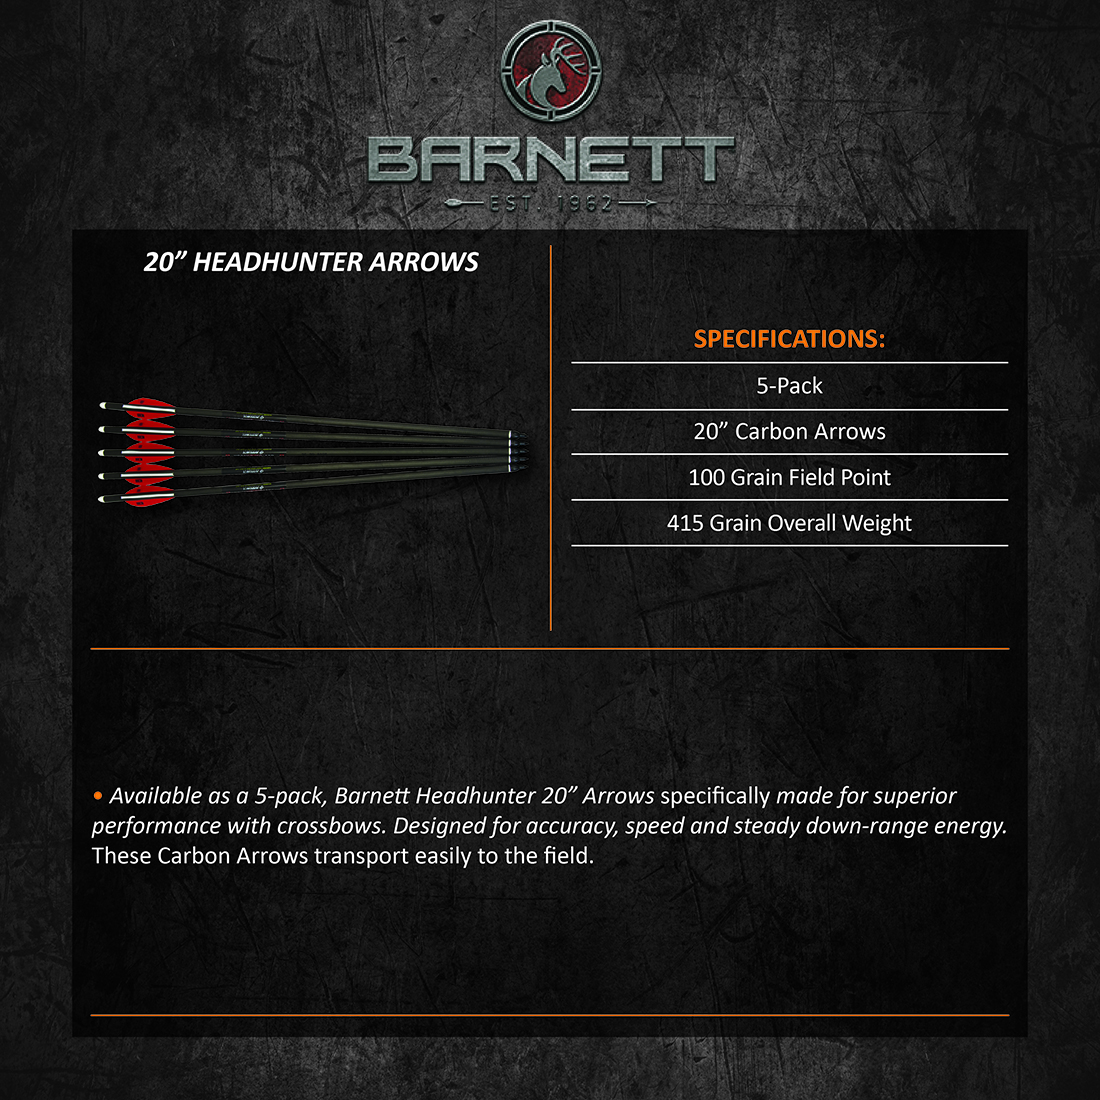 Barnett_Headhunter_Carbon_Arrows(20inch)_Product_Description